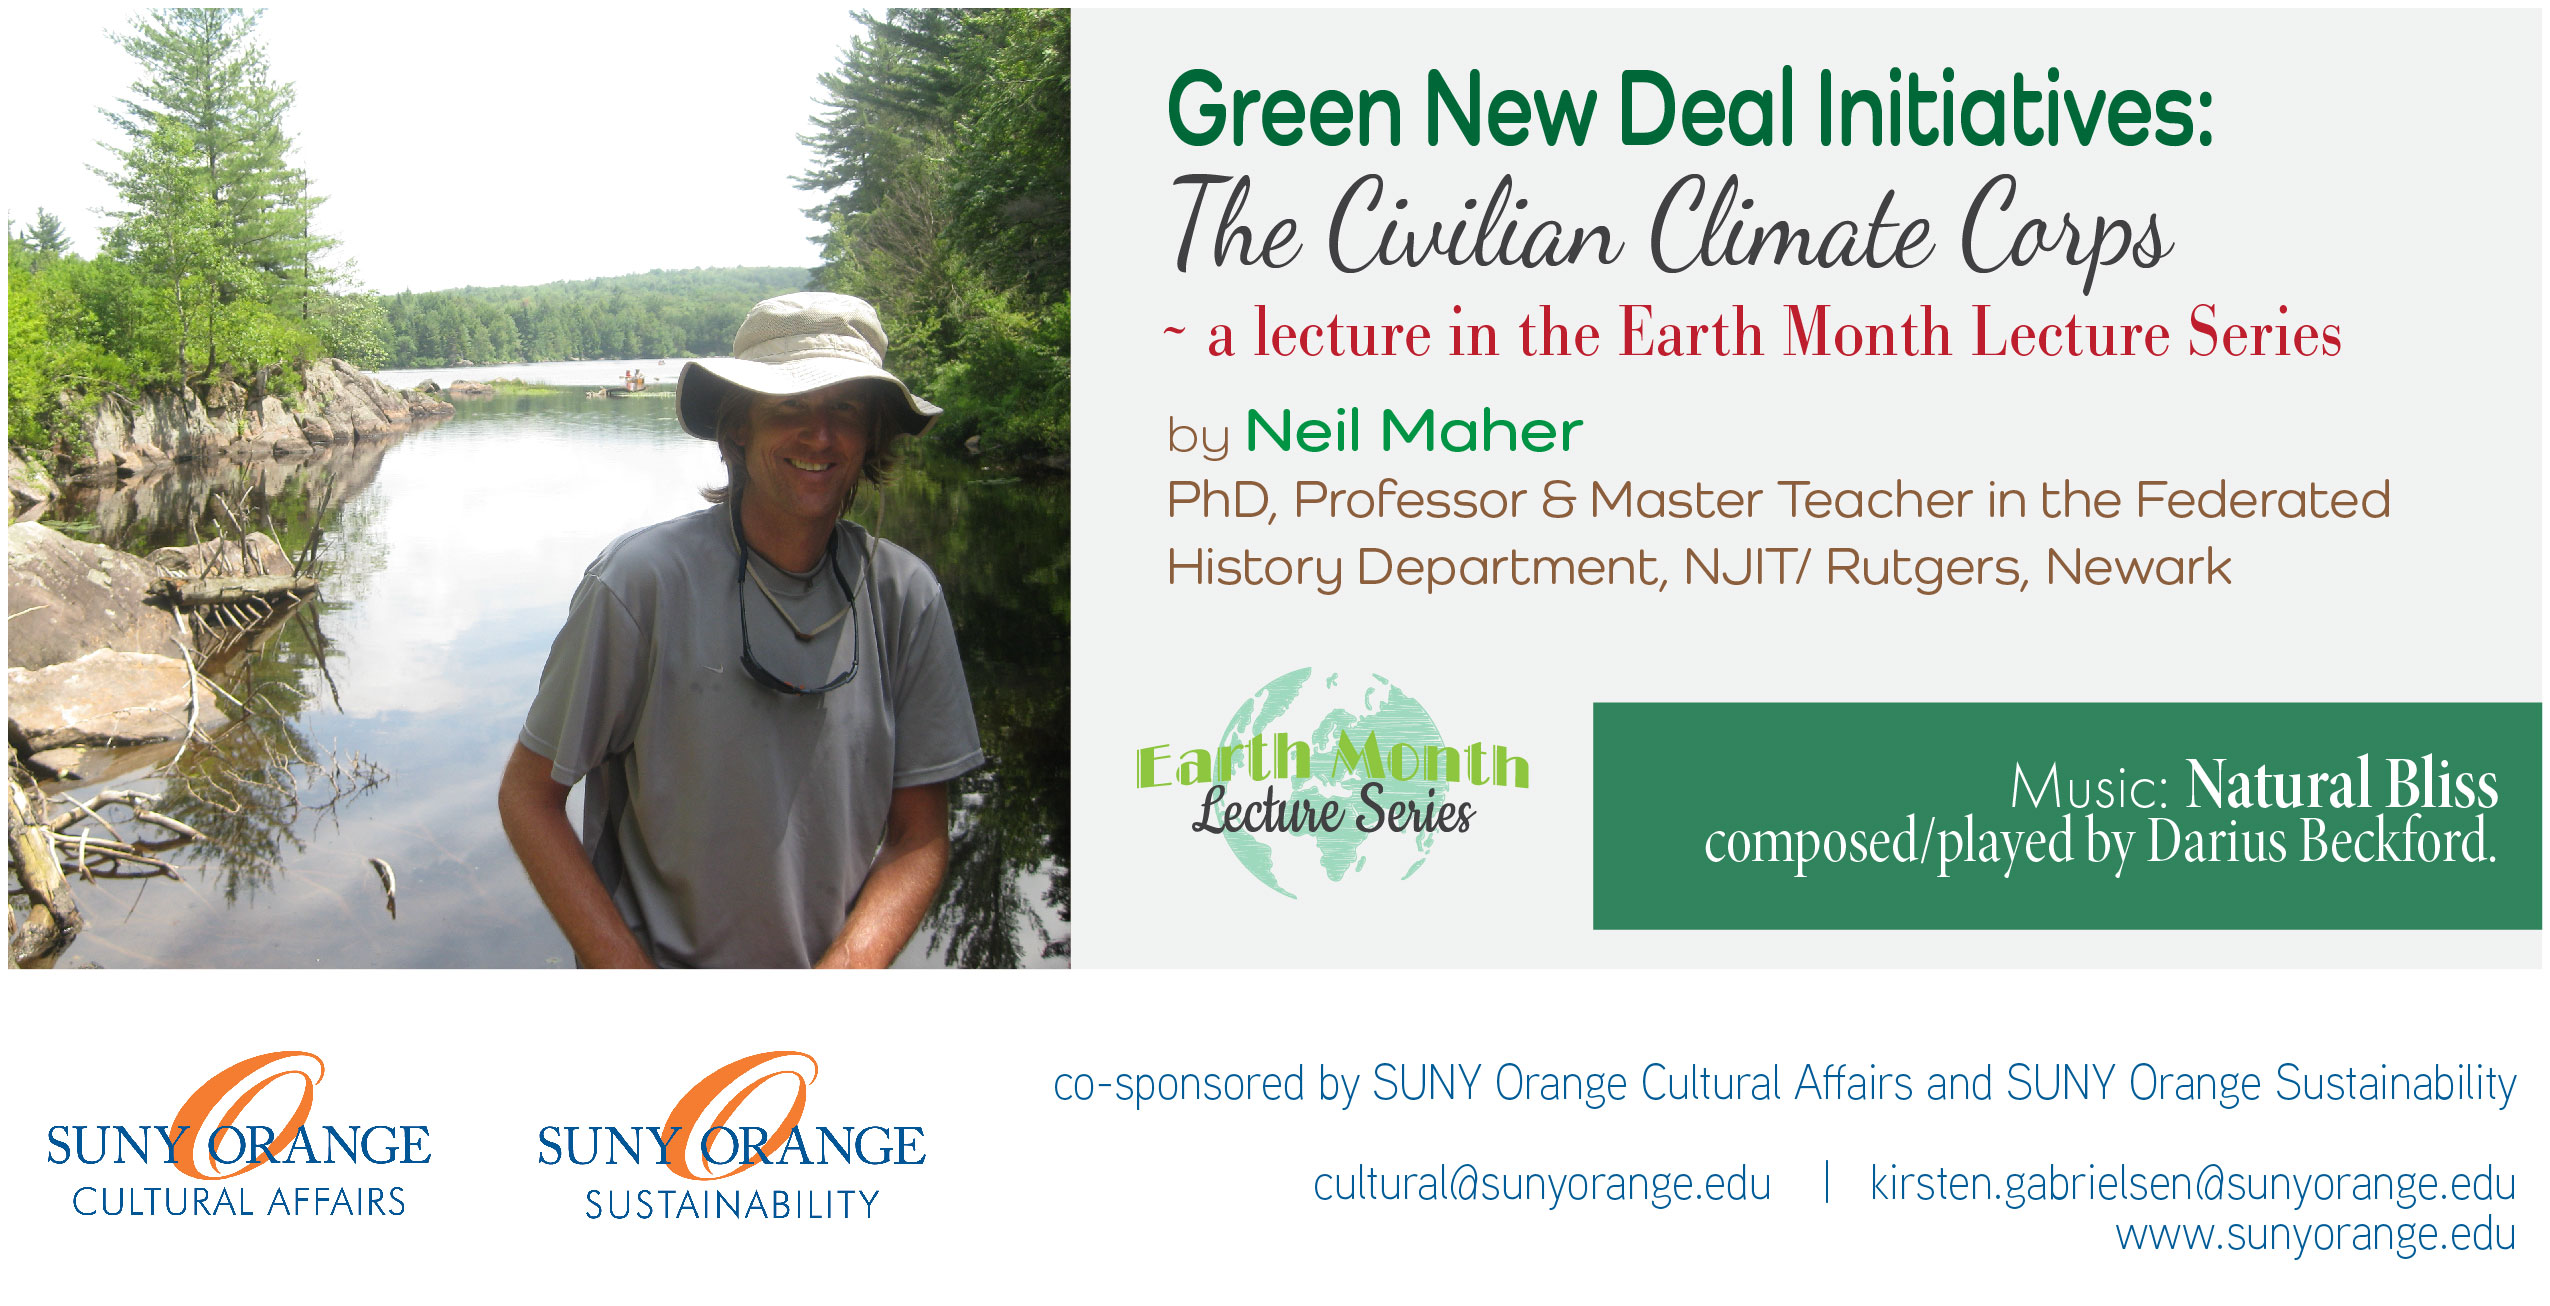 Green New Deal Initiatives: The Civilian Climate Corps